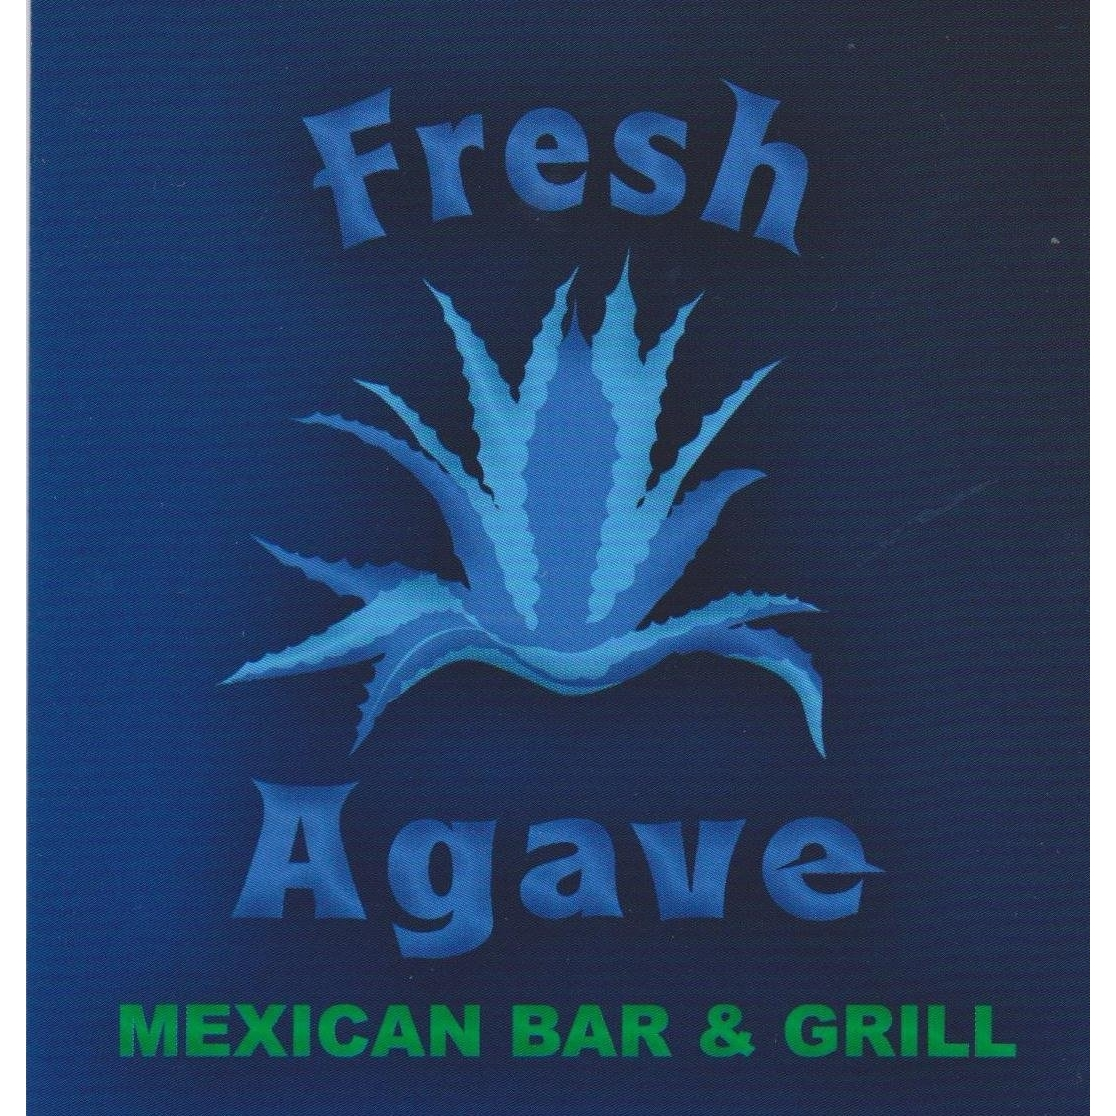 Fresh Agave Mexican Bar & Grill - ad image